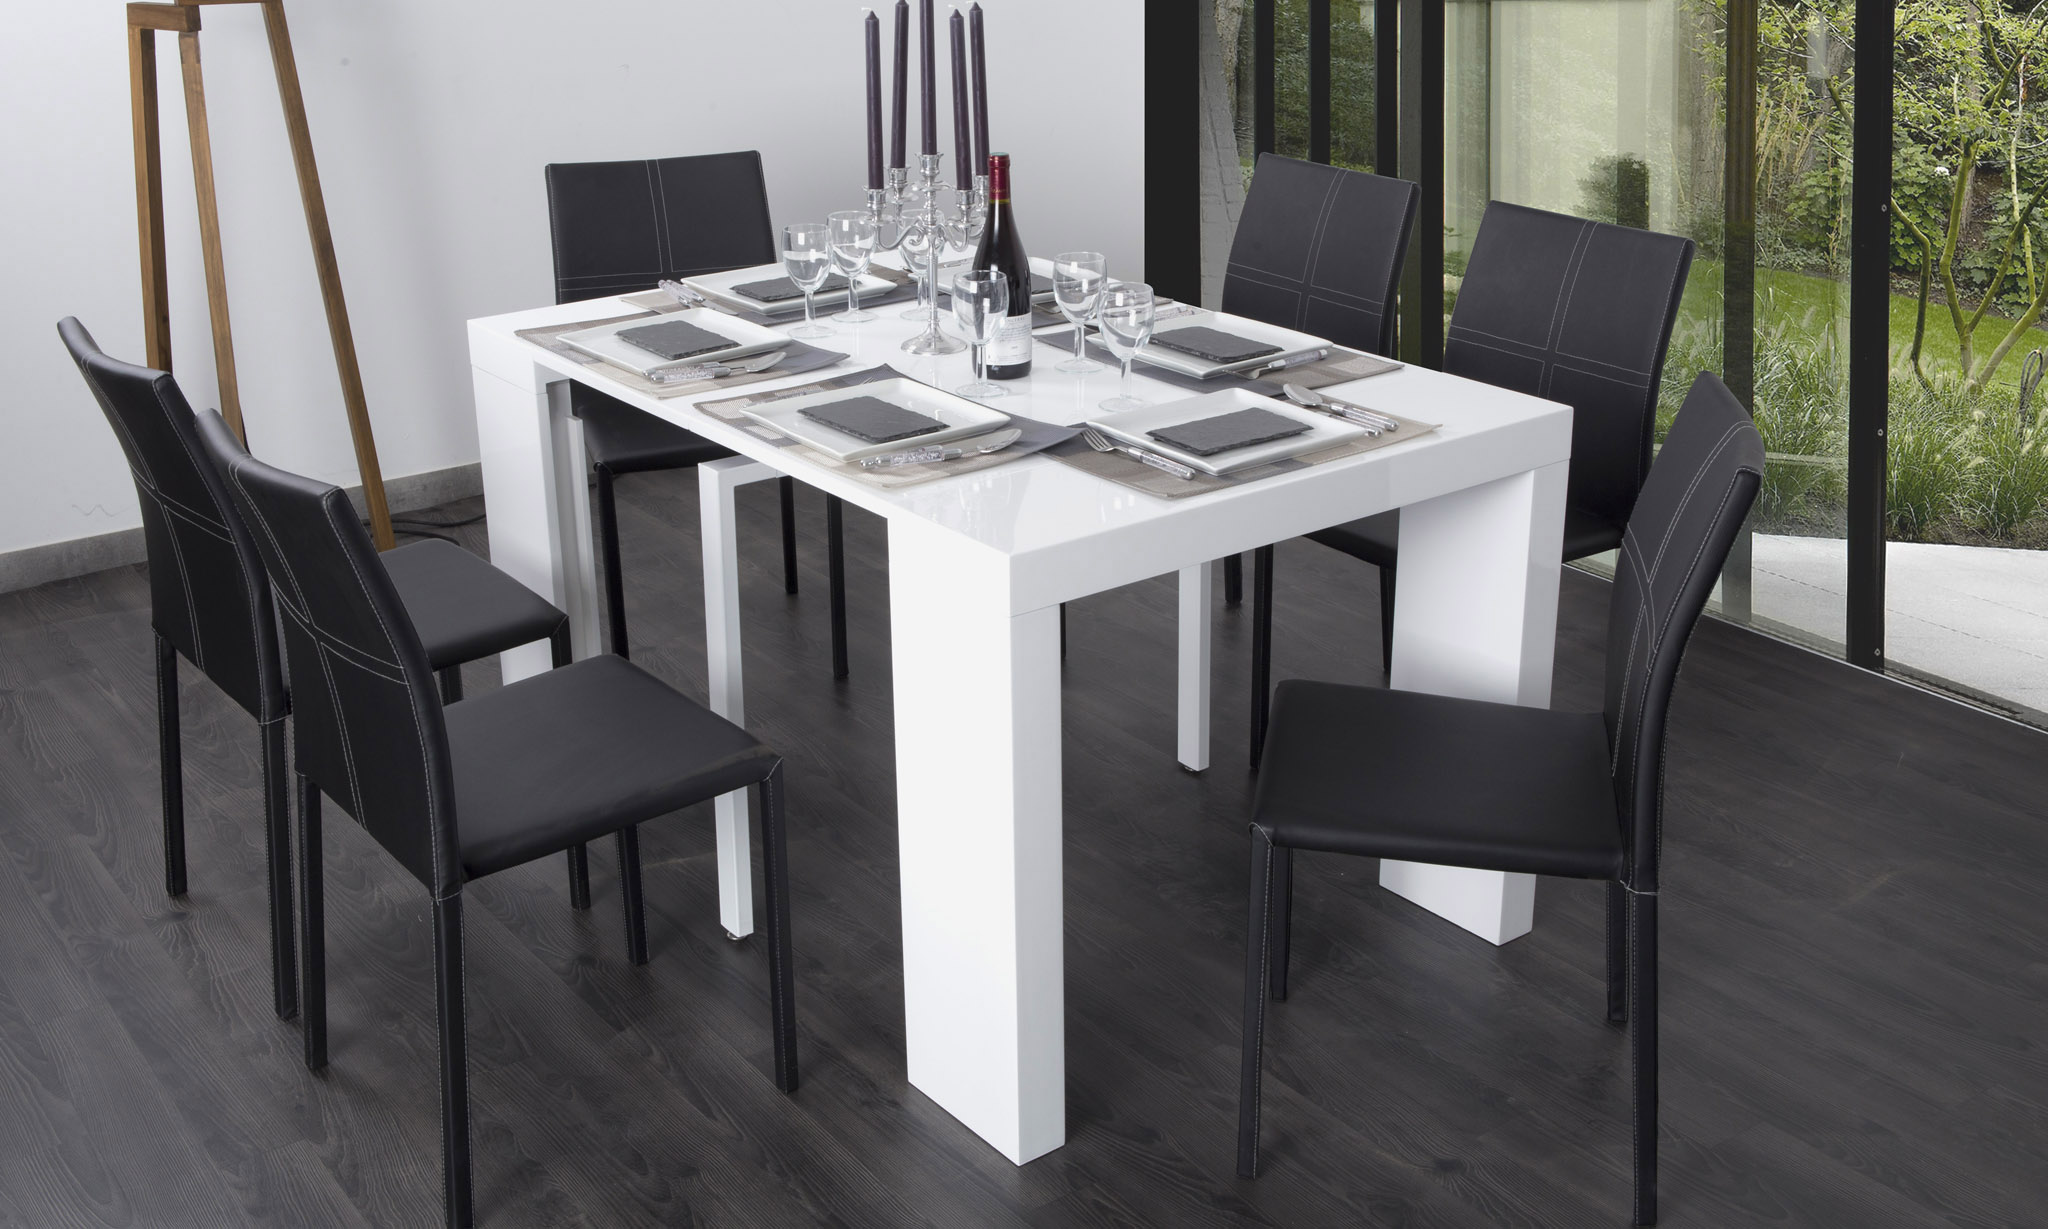 Console extensible groupon images - Table extensible 12 personnes ...